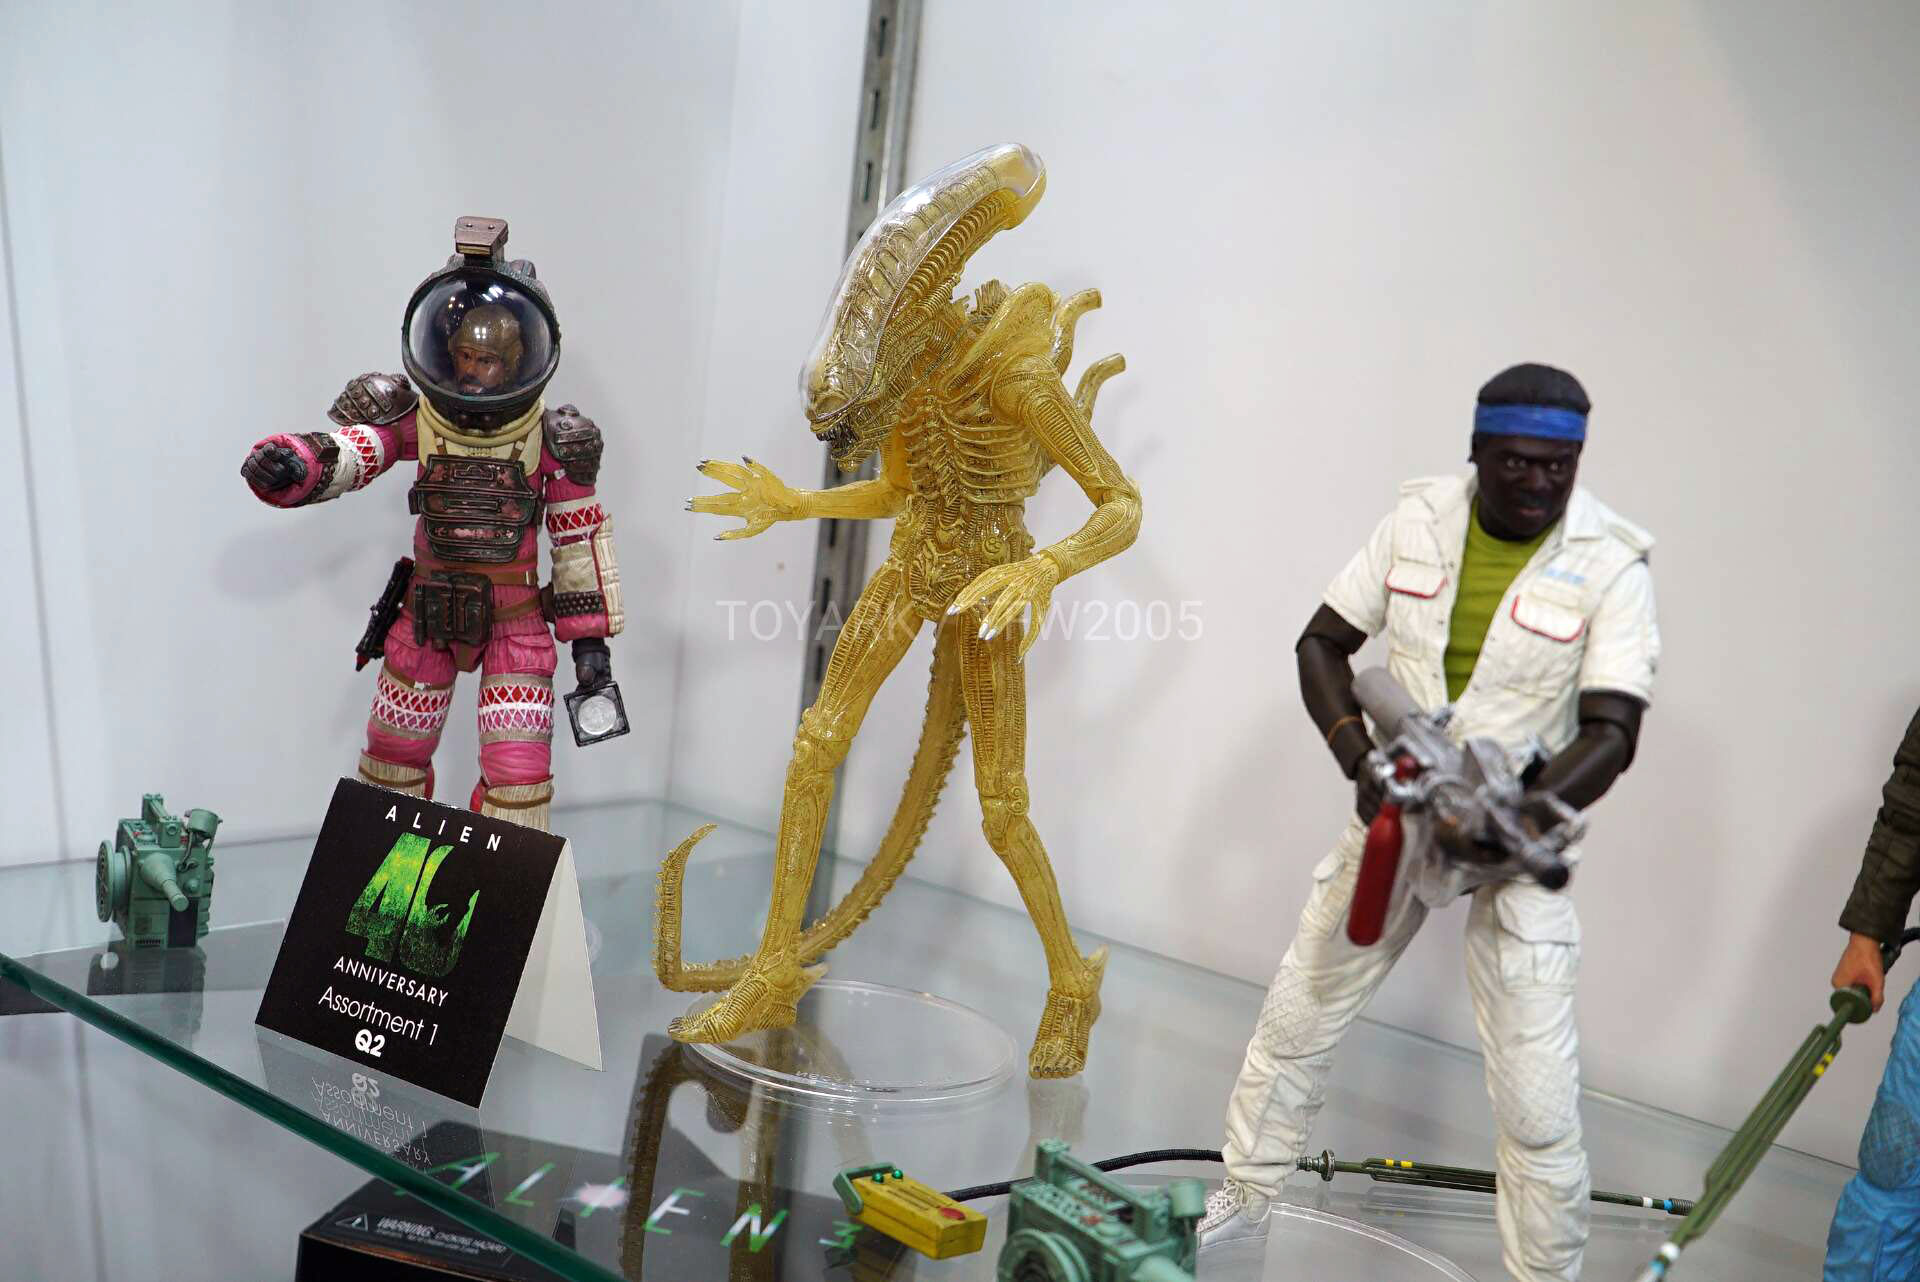 Toy-Fair-2020-NECA-Alien-and-Predator-020.jpg